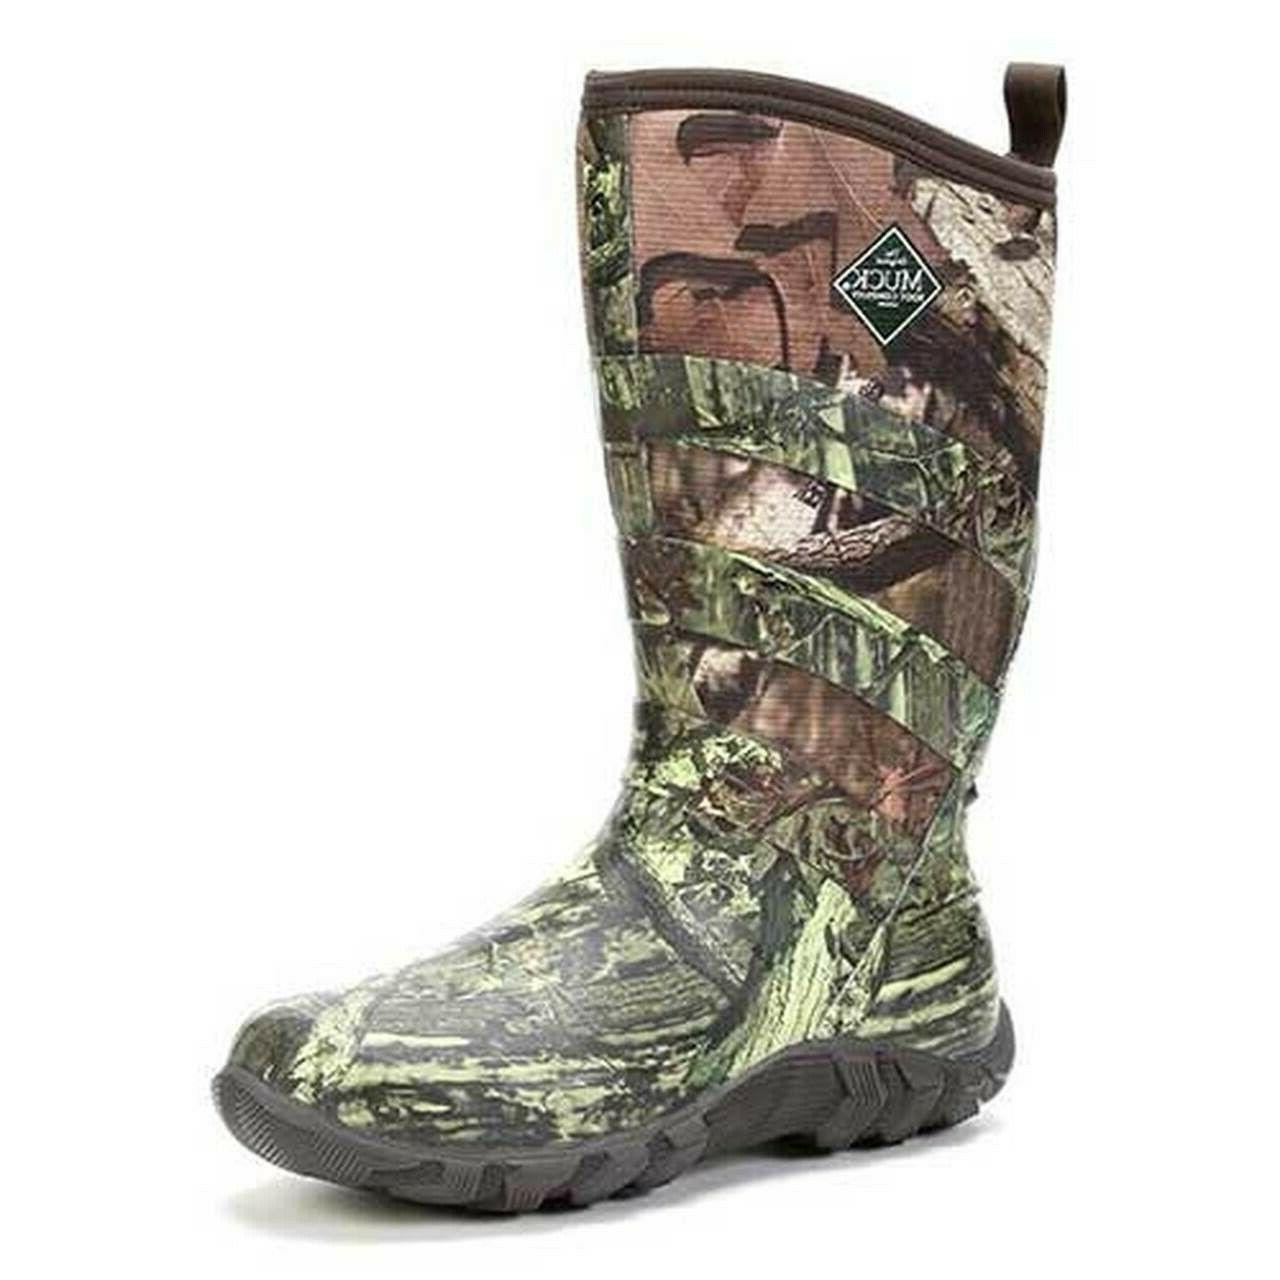 Muck FIELDRUNNER Mossy Sporty Hunting Boots 11